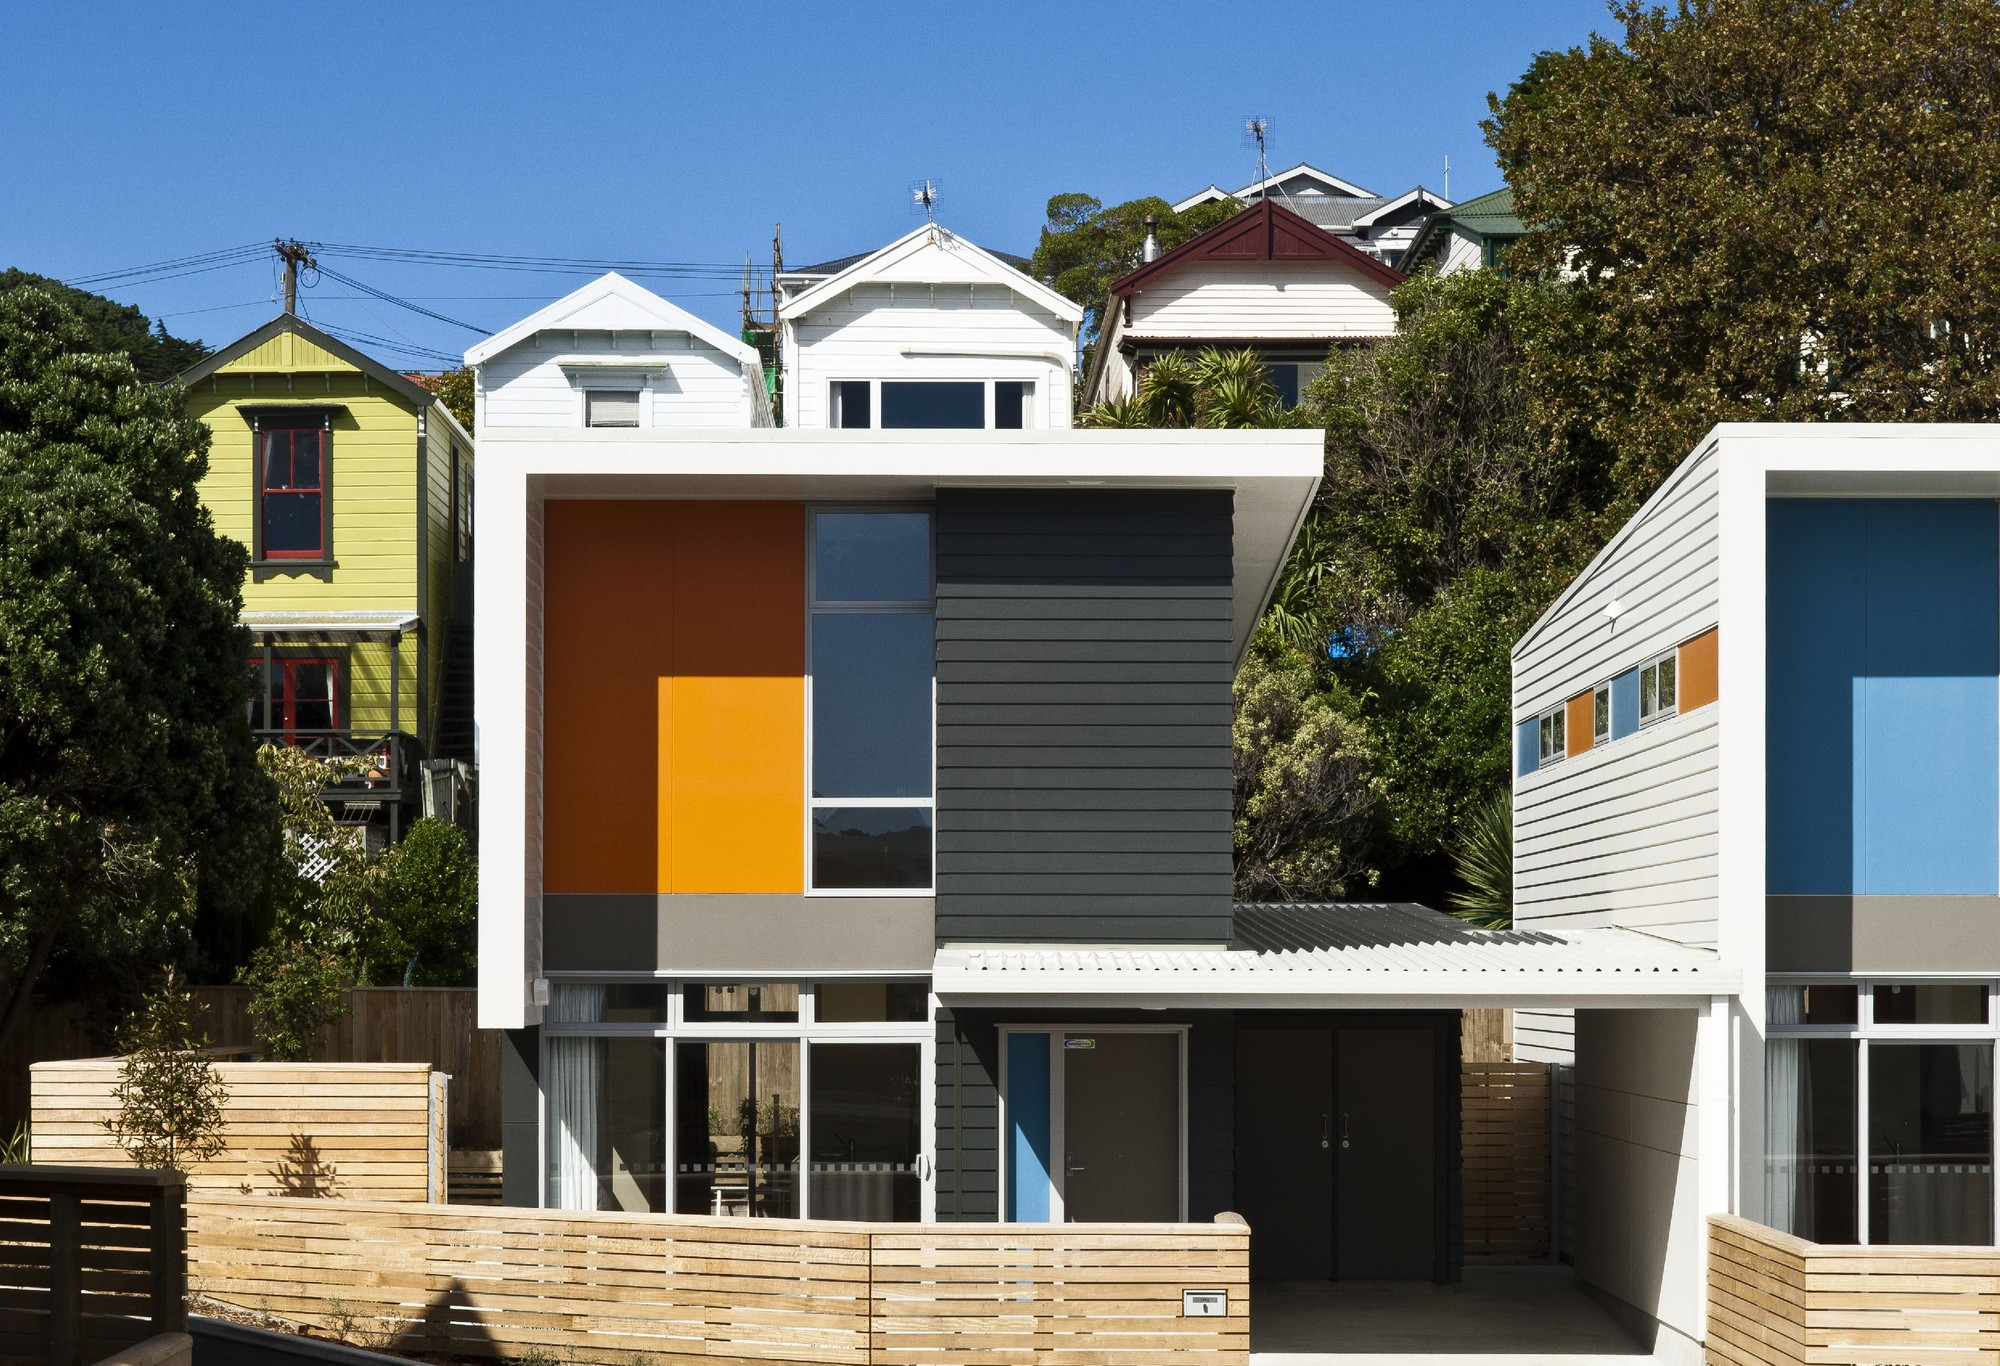 New zealand architecture award winners 2013 annouced for Apartment design your destiny winner